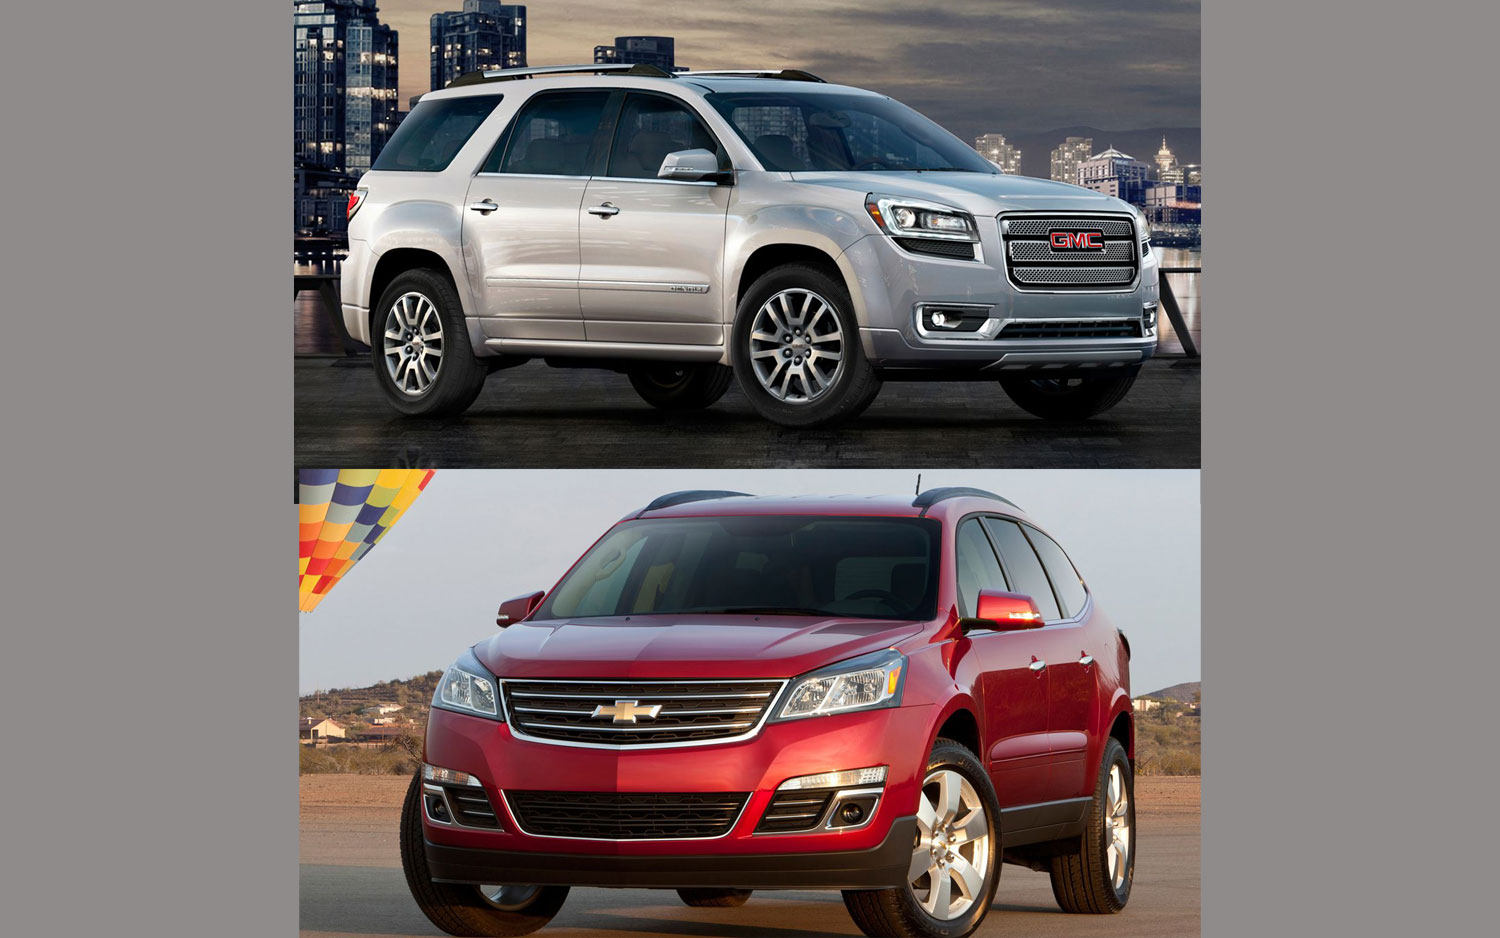 Gm Crossover Matchup 2013 Chevy Traverse Vs 2013 Gmc Acadia